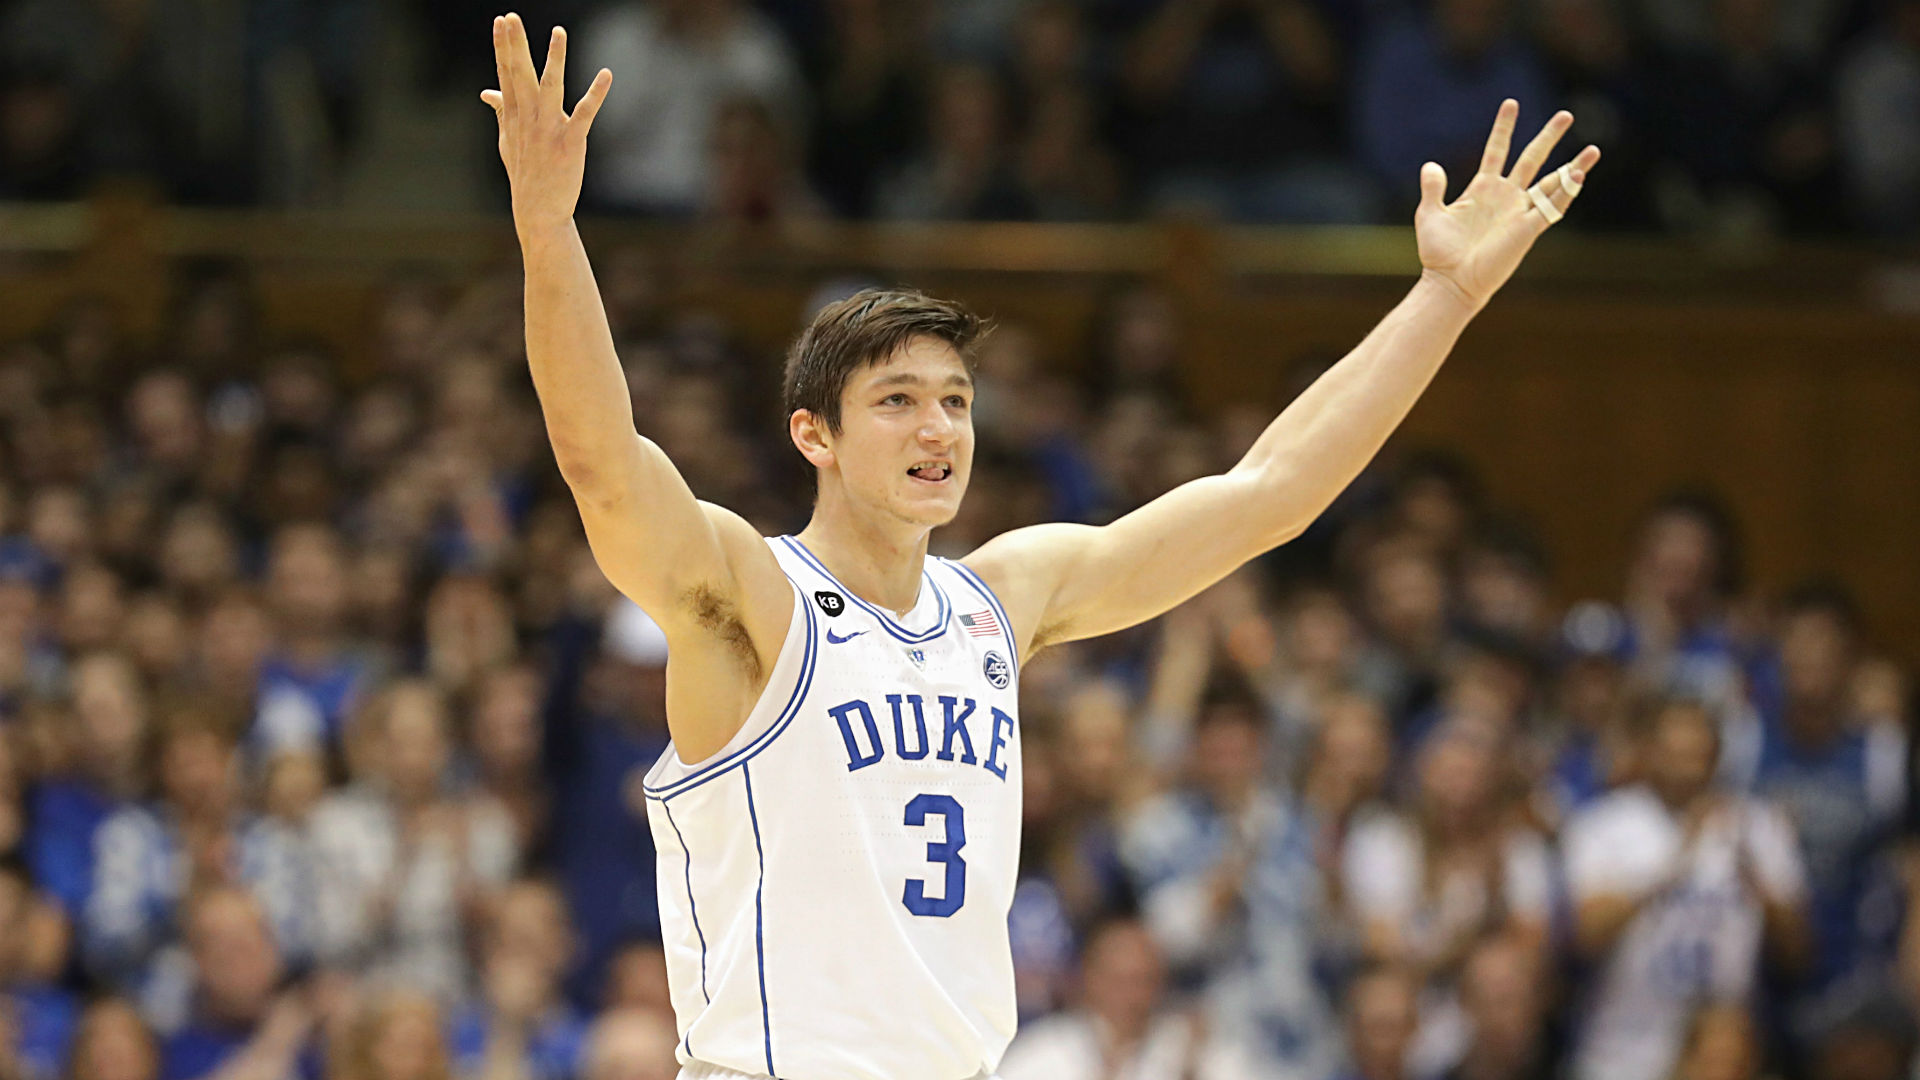 grayson allen gets technical foul after angrily slamming